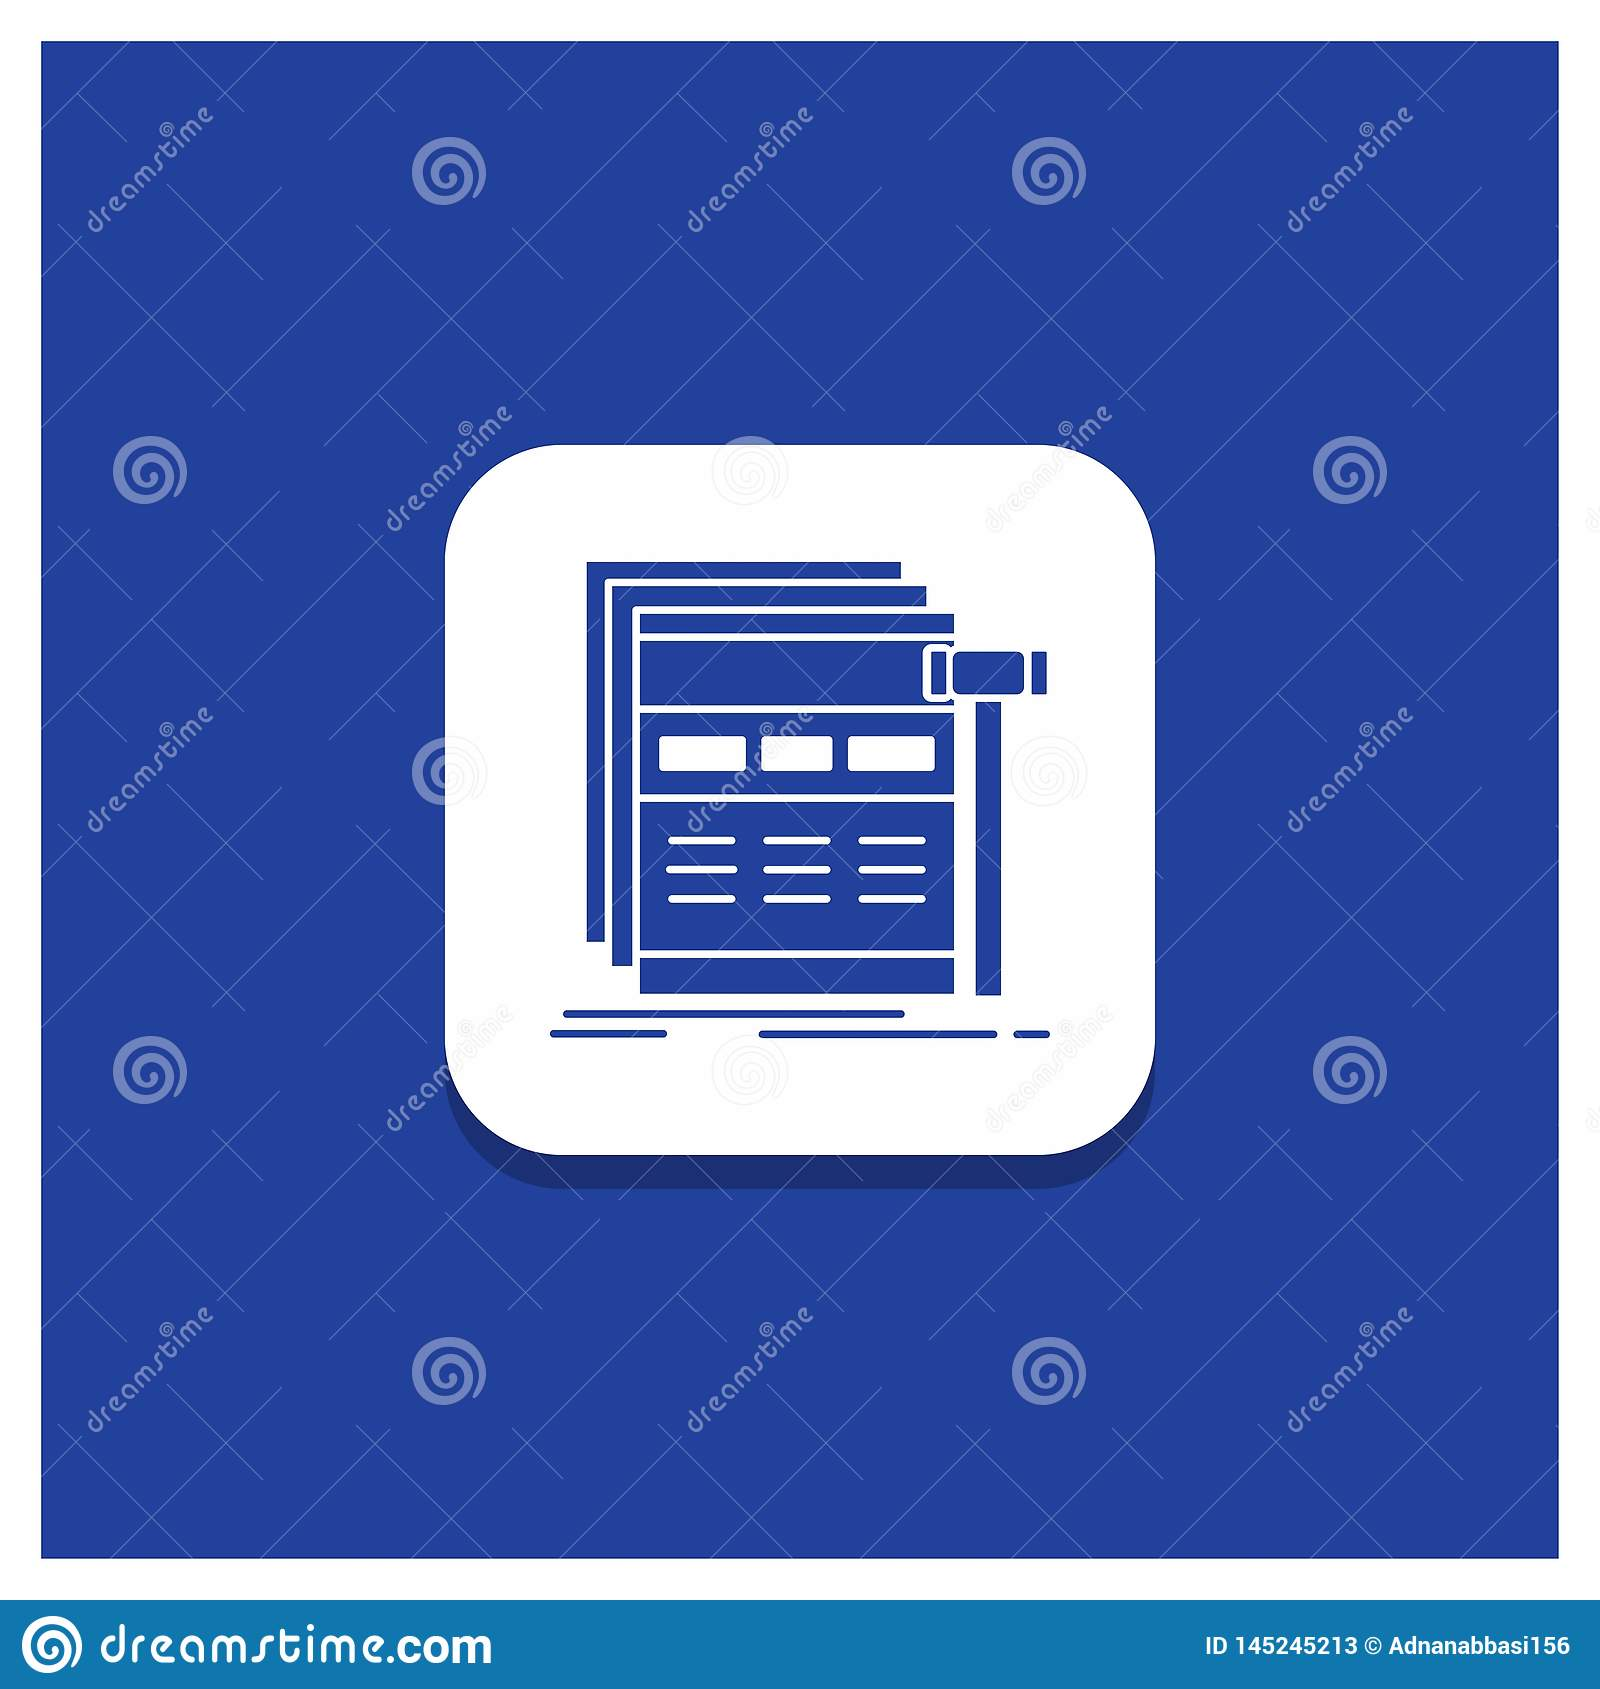 Blue Round Button for Internet, page, web, webpage, wireframe Glyph icon